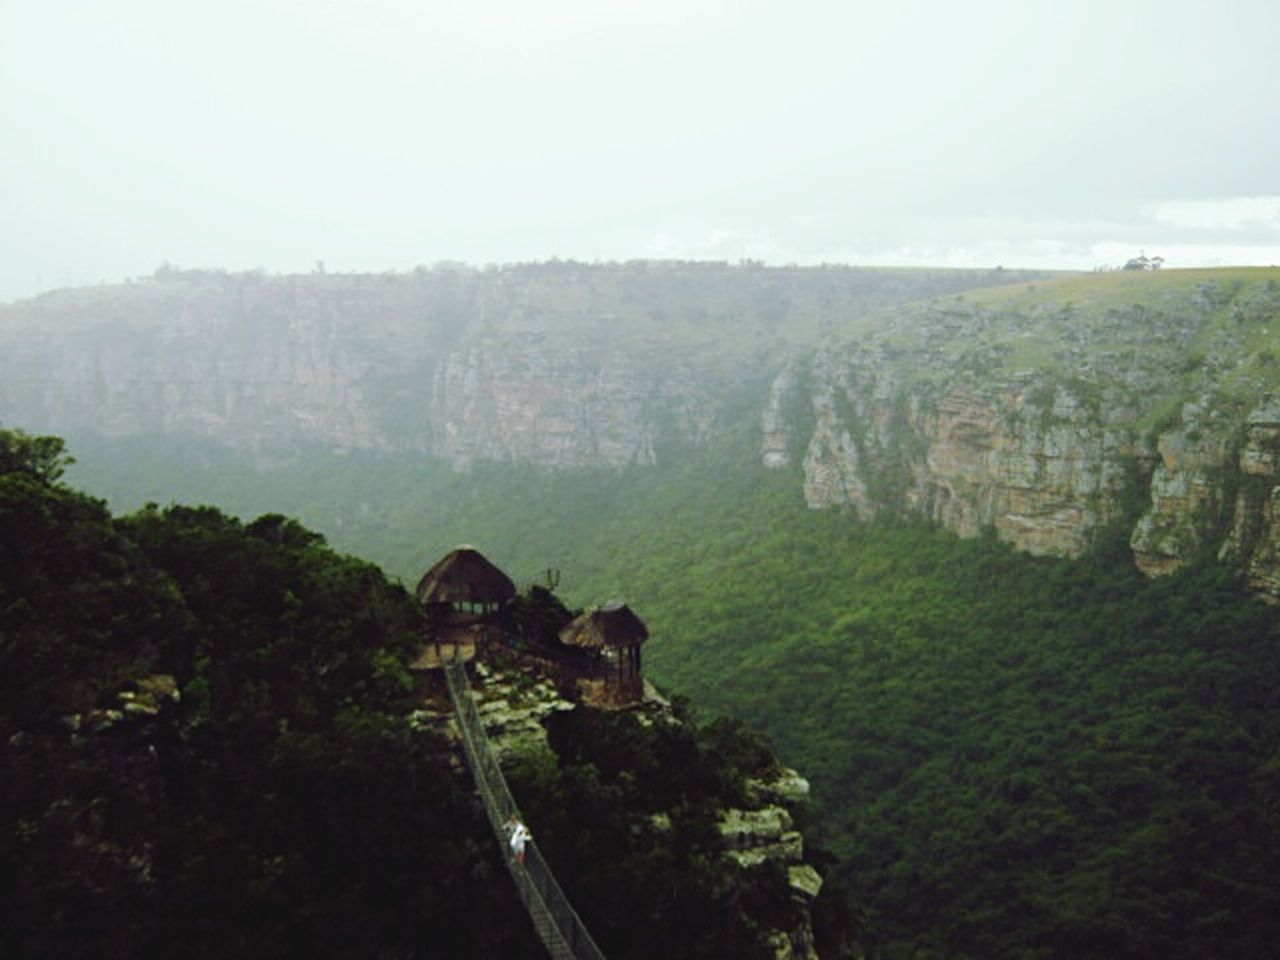 Oribi Gorge South Africa Scenic View Oribi Georg Nature Reserve Beauty In Nature Photography Outdoors Nature Scenics